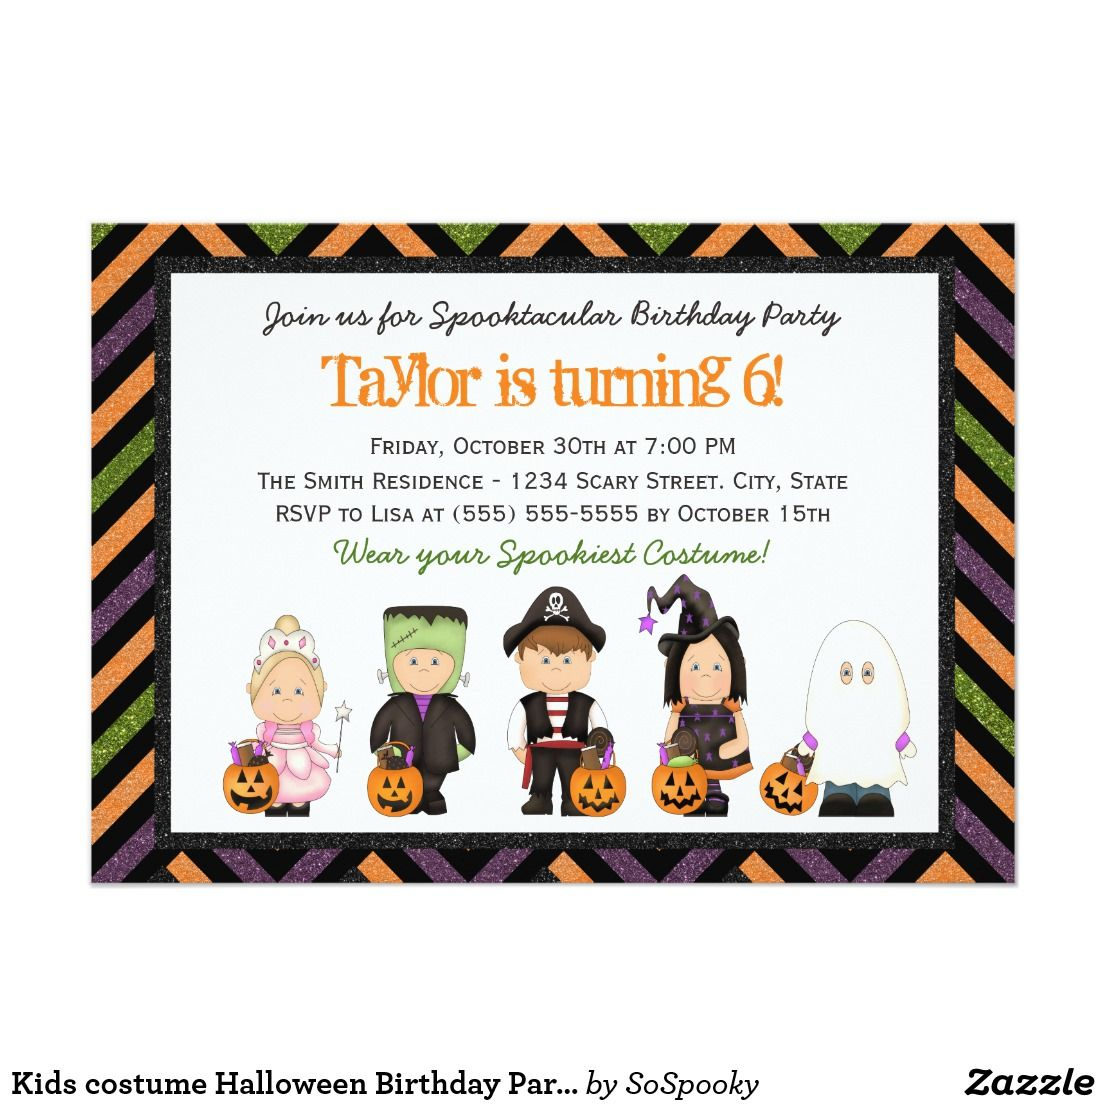 Kids costume Halloween Birthday Party Invitation. Personalize ...